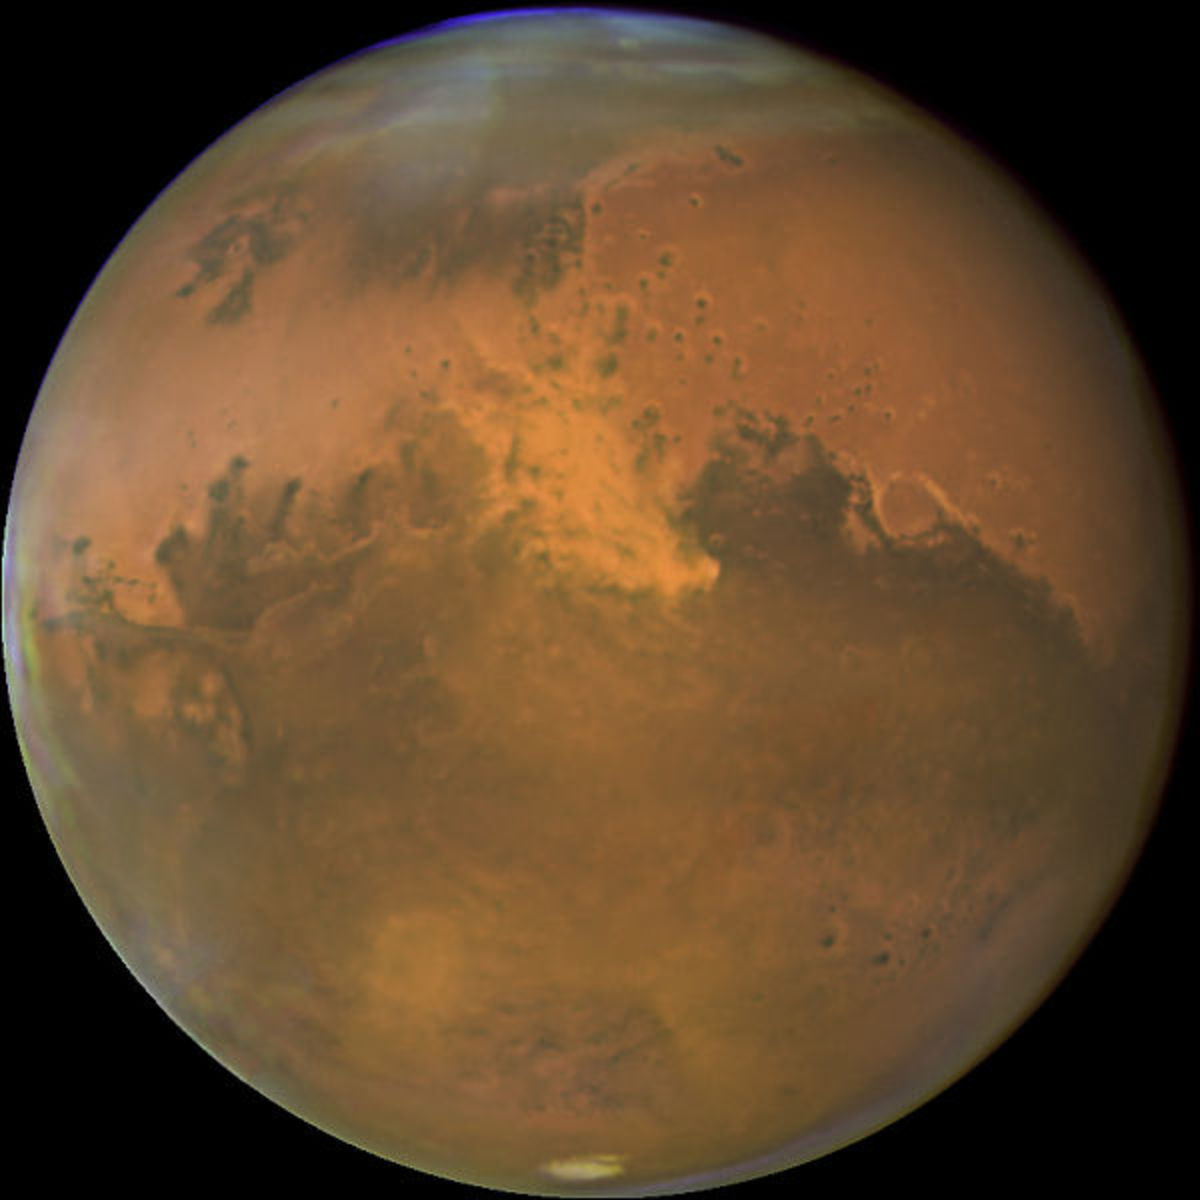 Is there life on Mars? - the debate